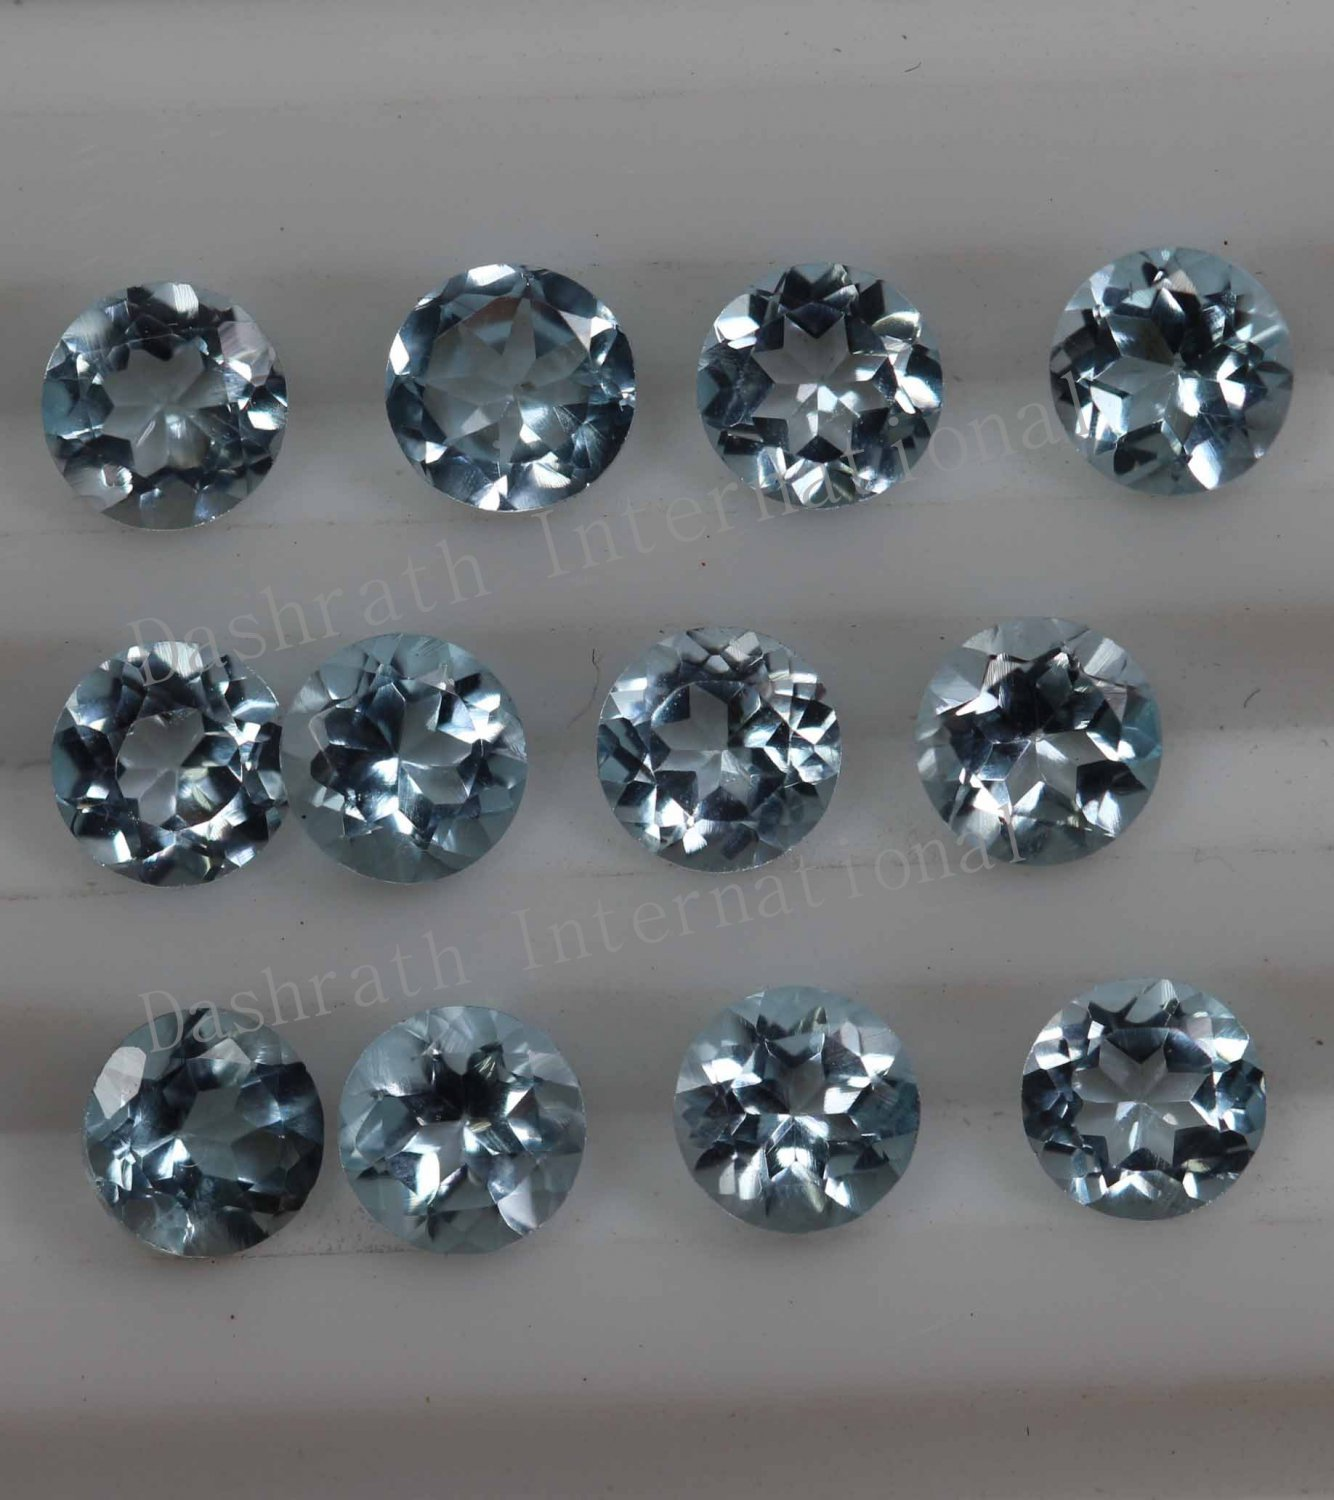 5mmNatural Sky Blue Topaz Faceted Cut Round 10 Pieces Lot Blue Color  Top Quality Loose Gemstone